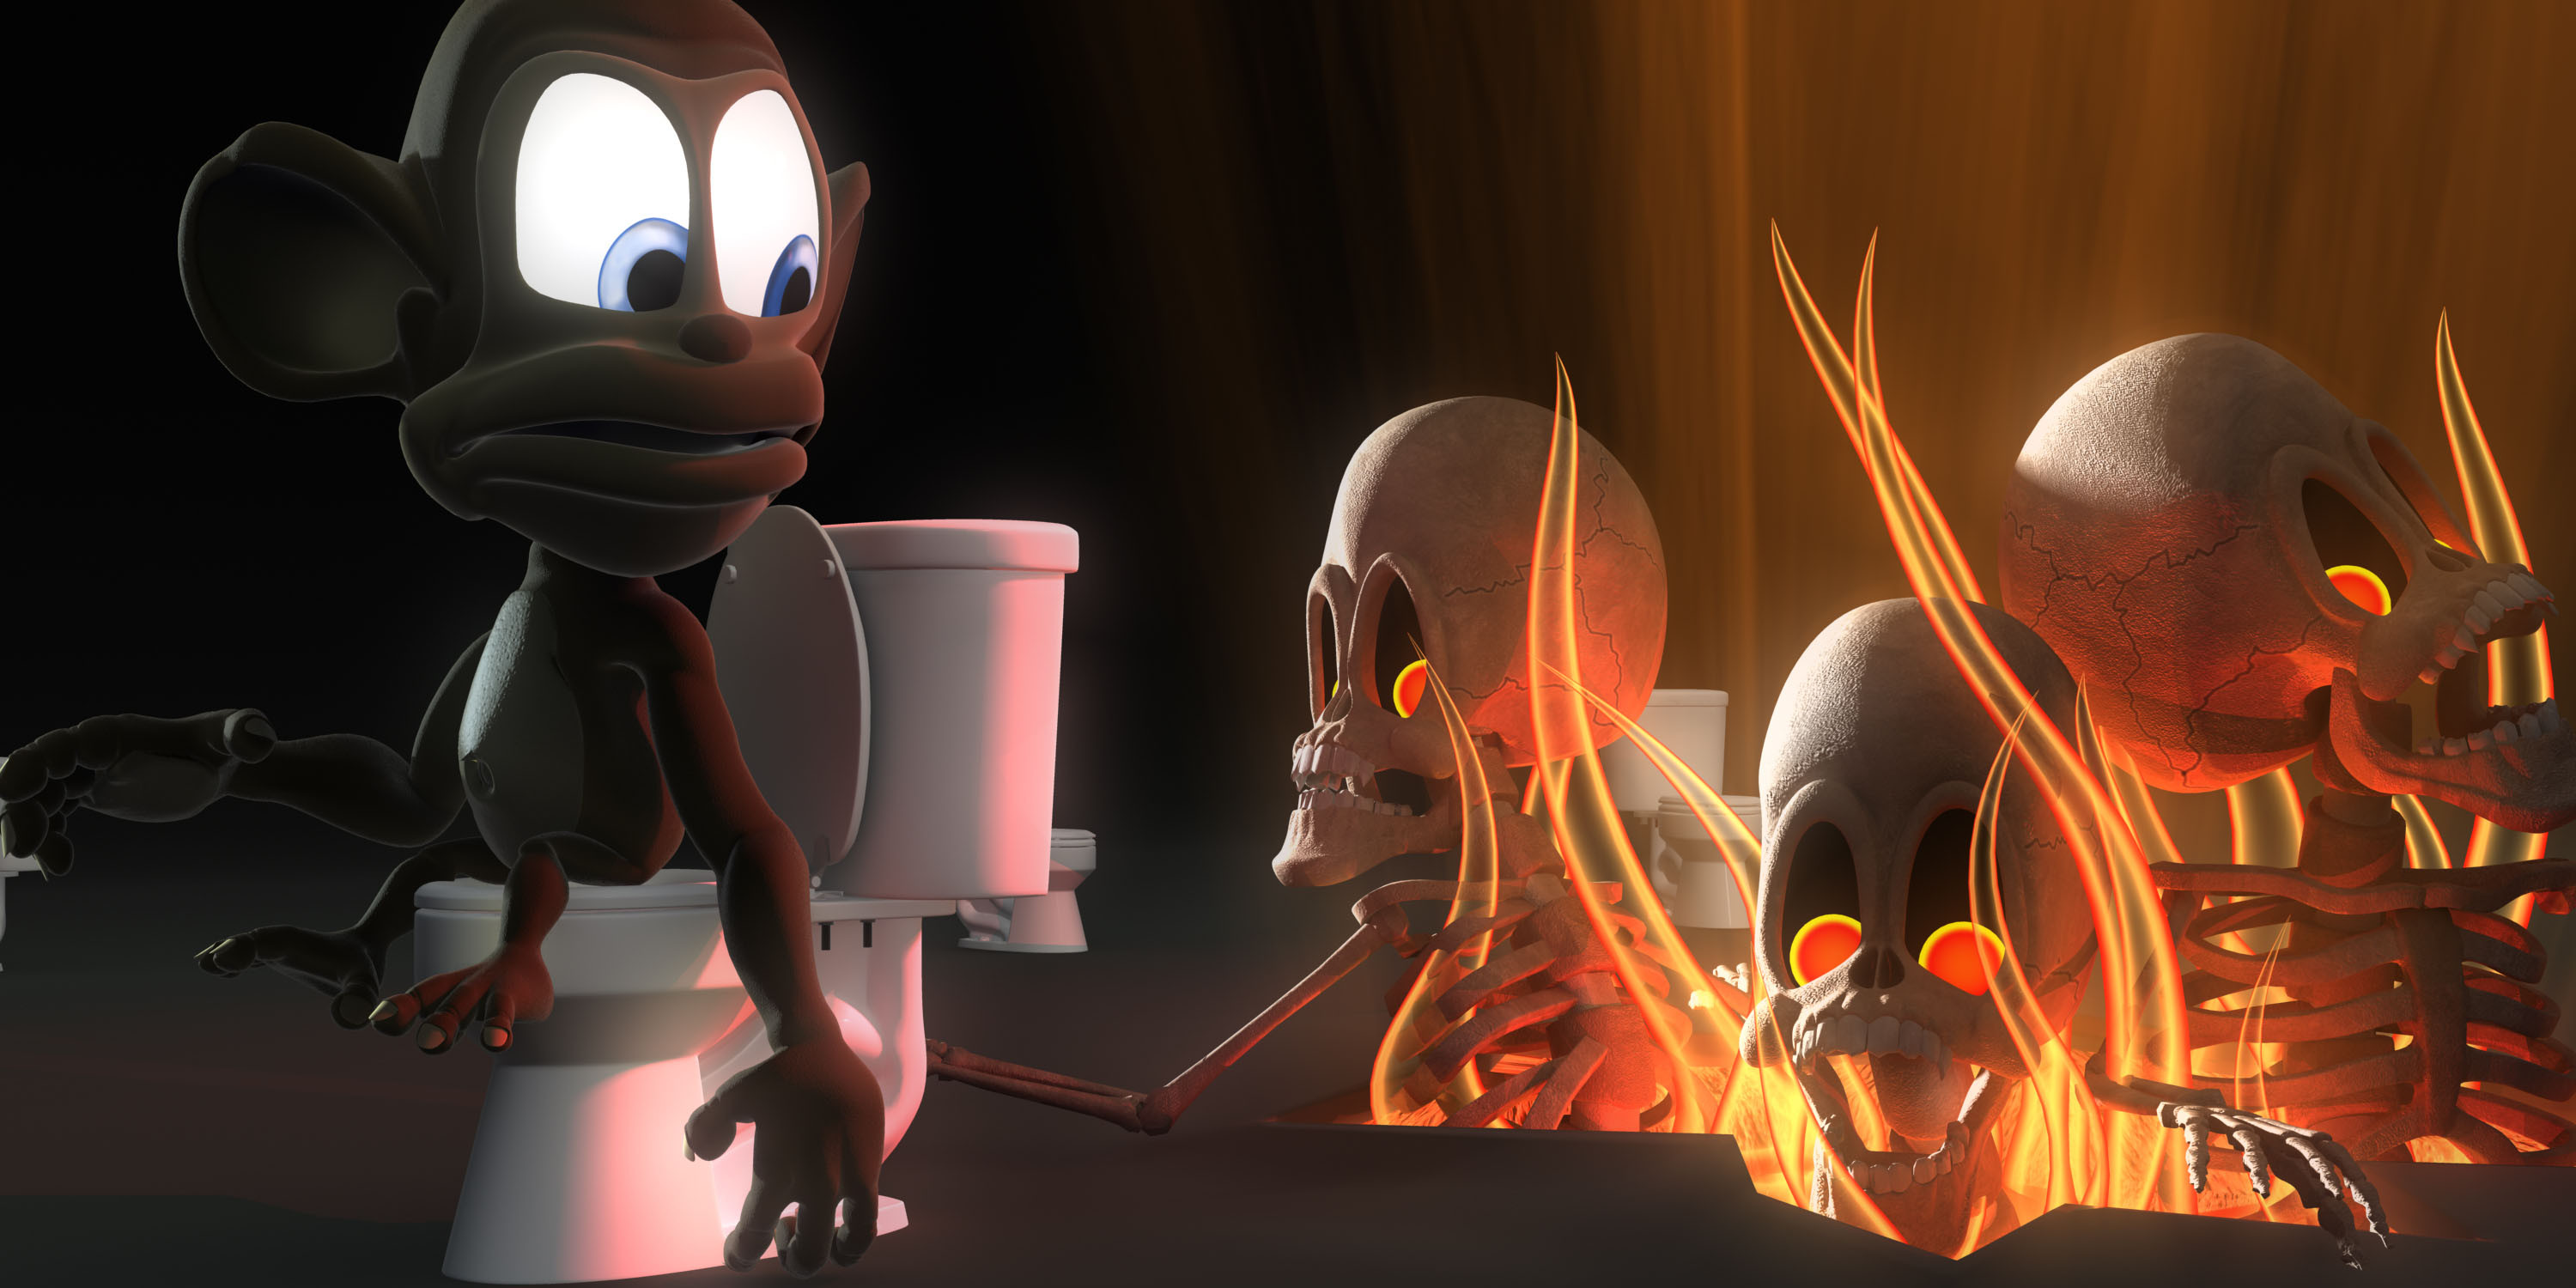 The cursed souls just happened to find a way out while Monkey was on the toilet.